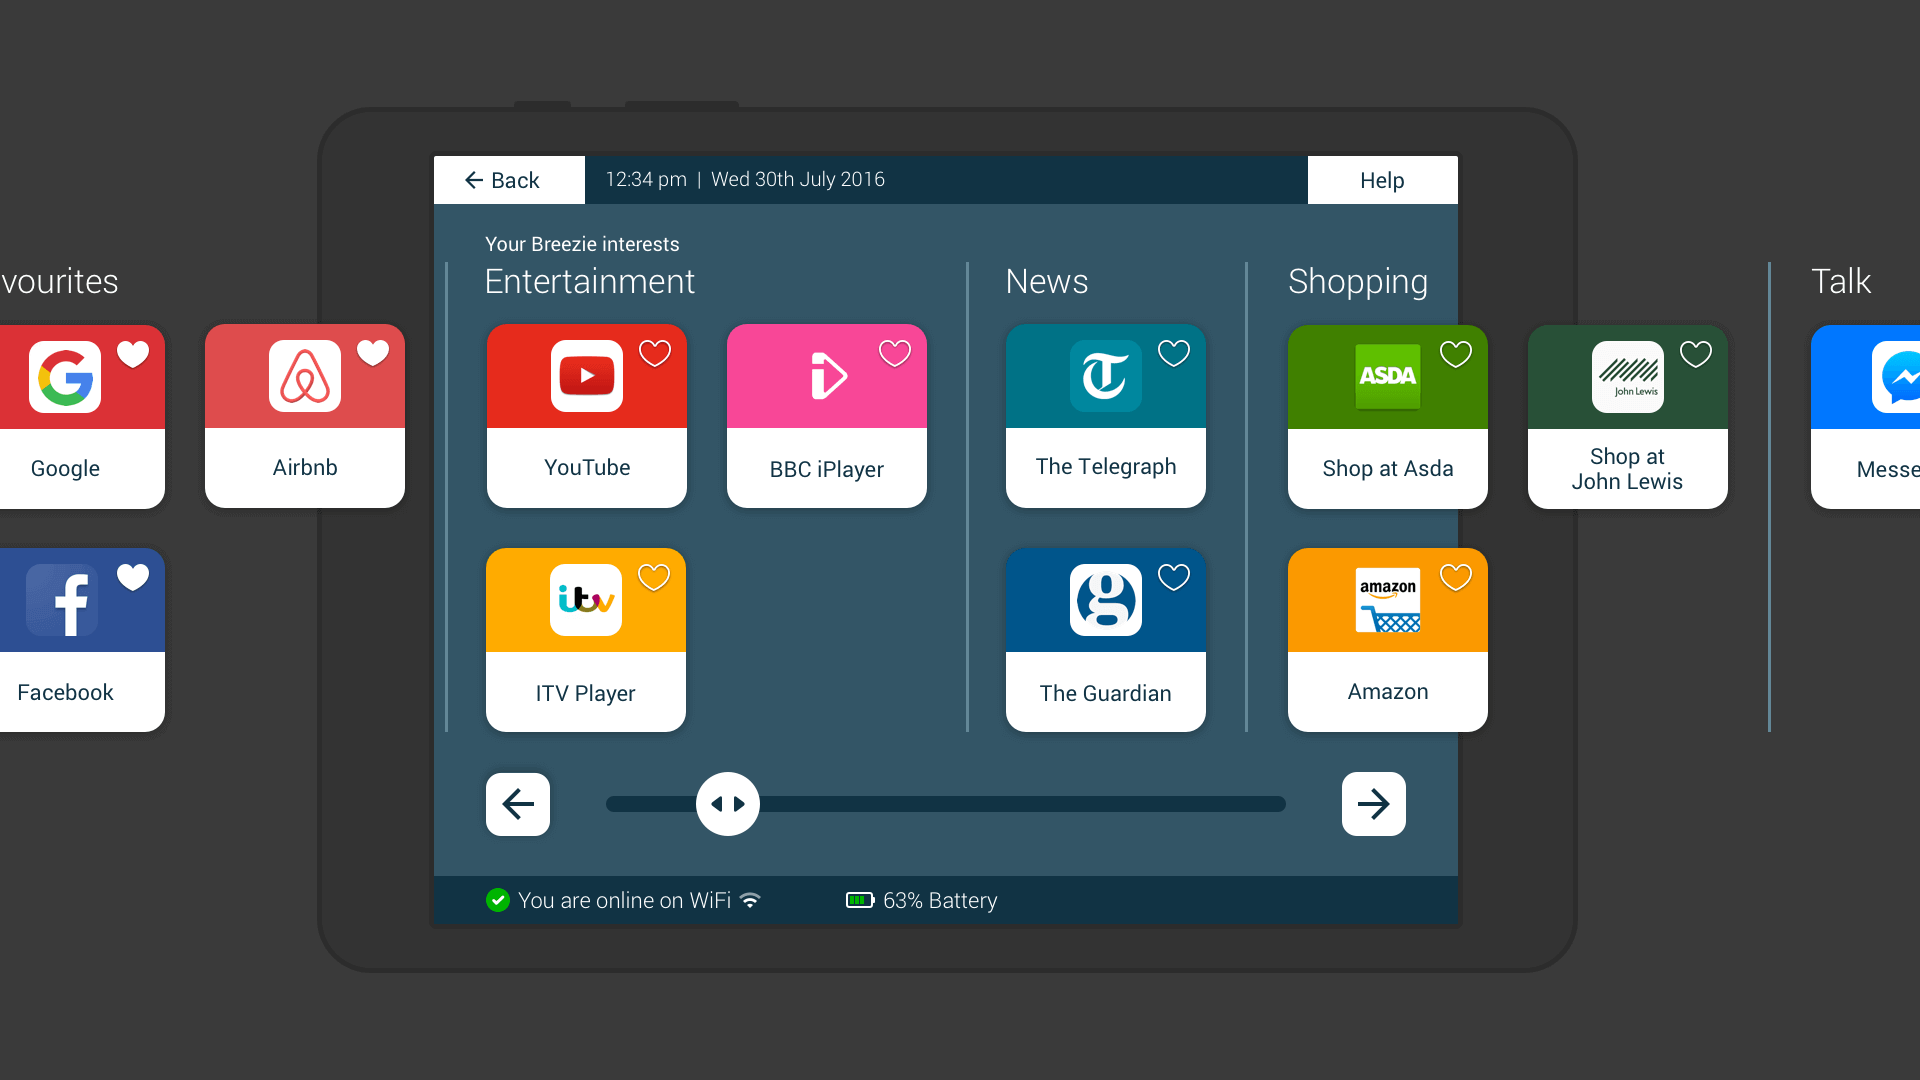 User interface (UI) components that can be found on Breezie's design library.